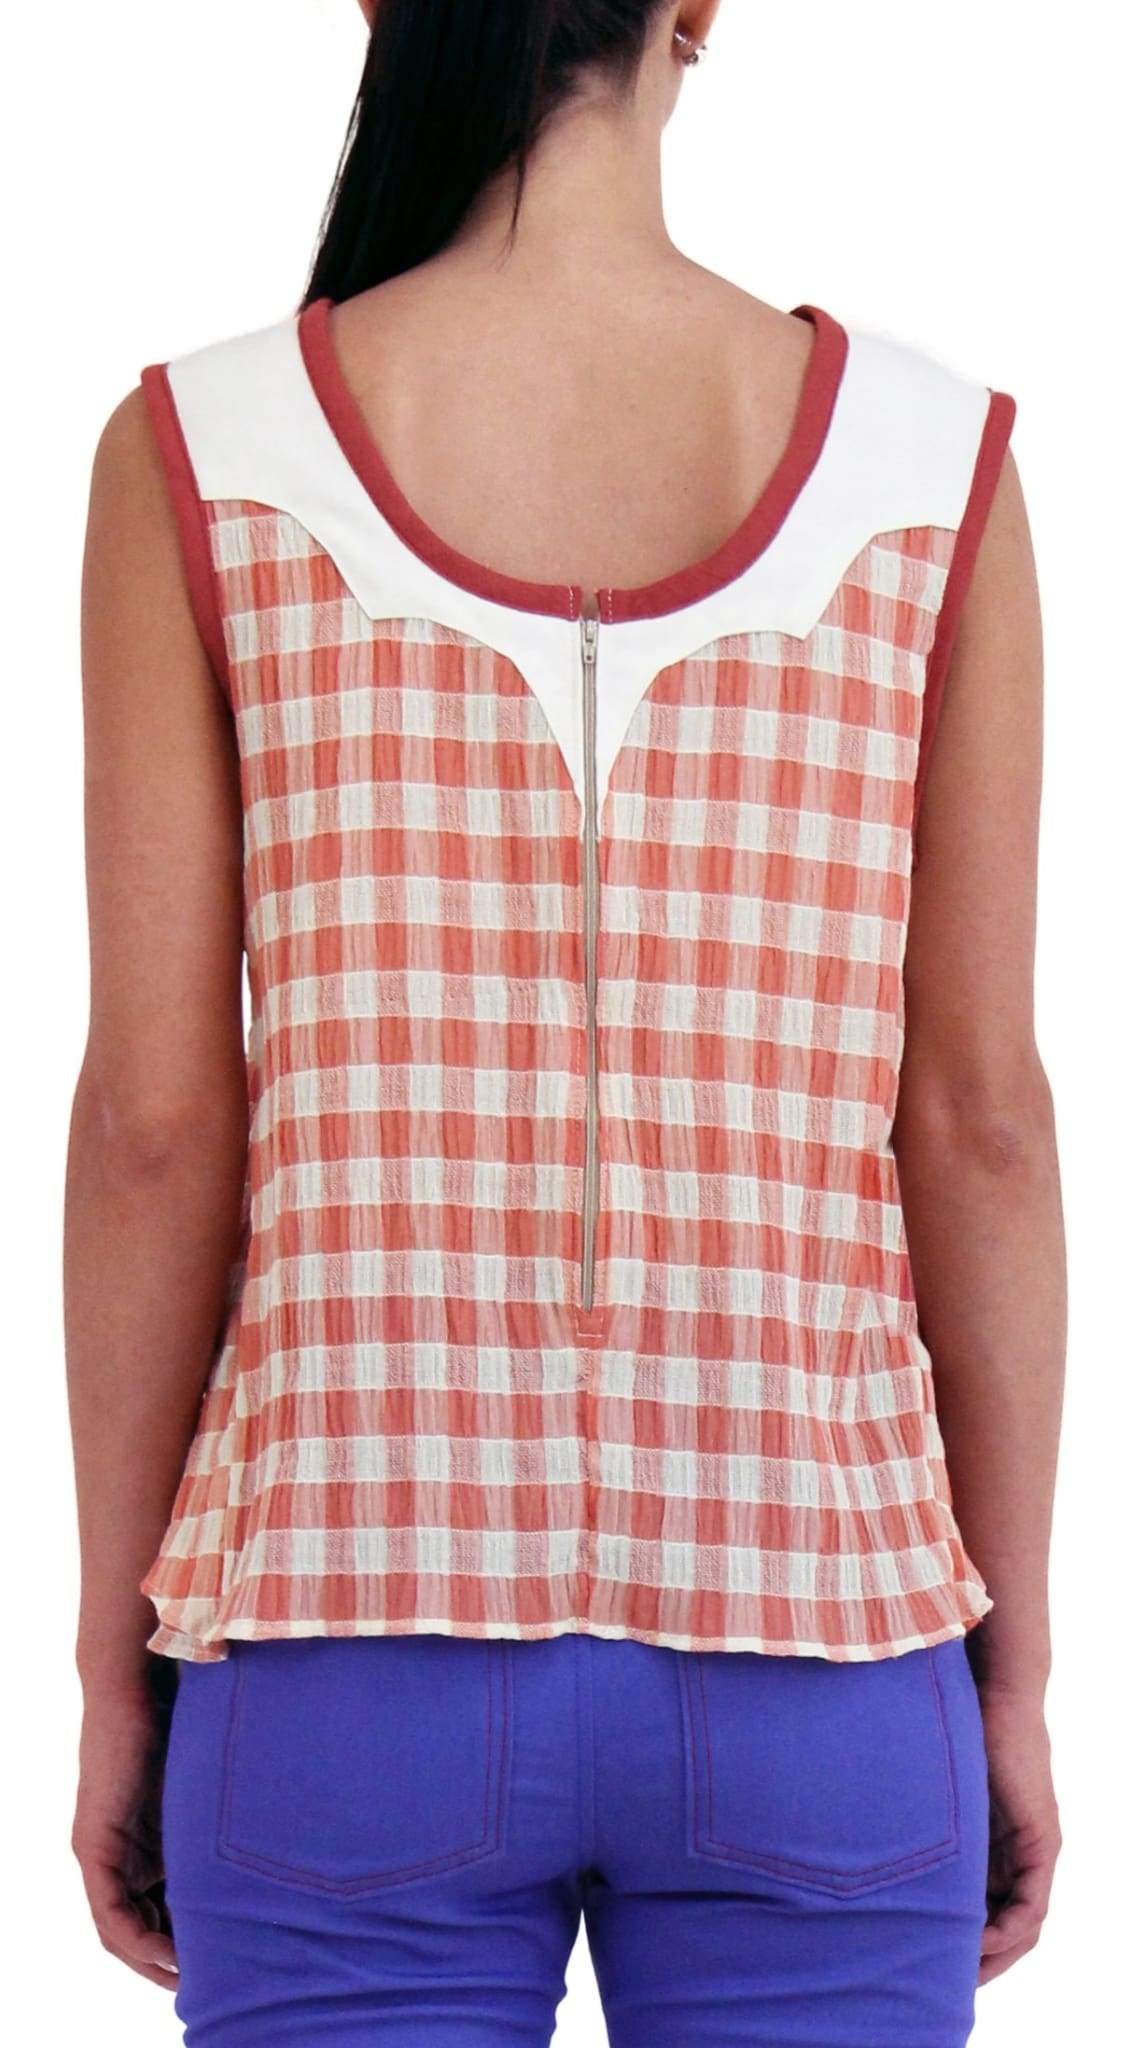 Western Red and White Check Layer Tank by Meghan Hughes Nineteenth Amendment